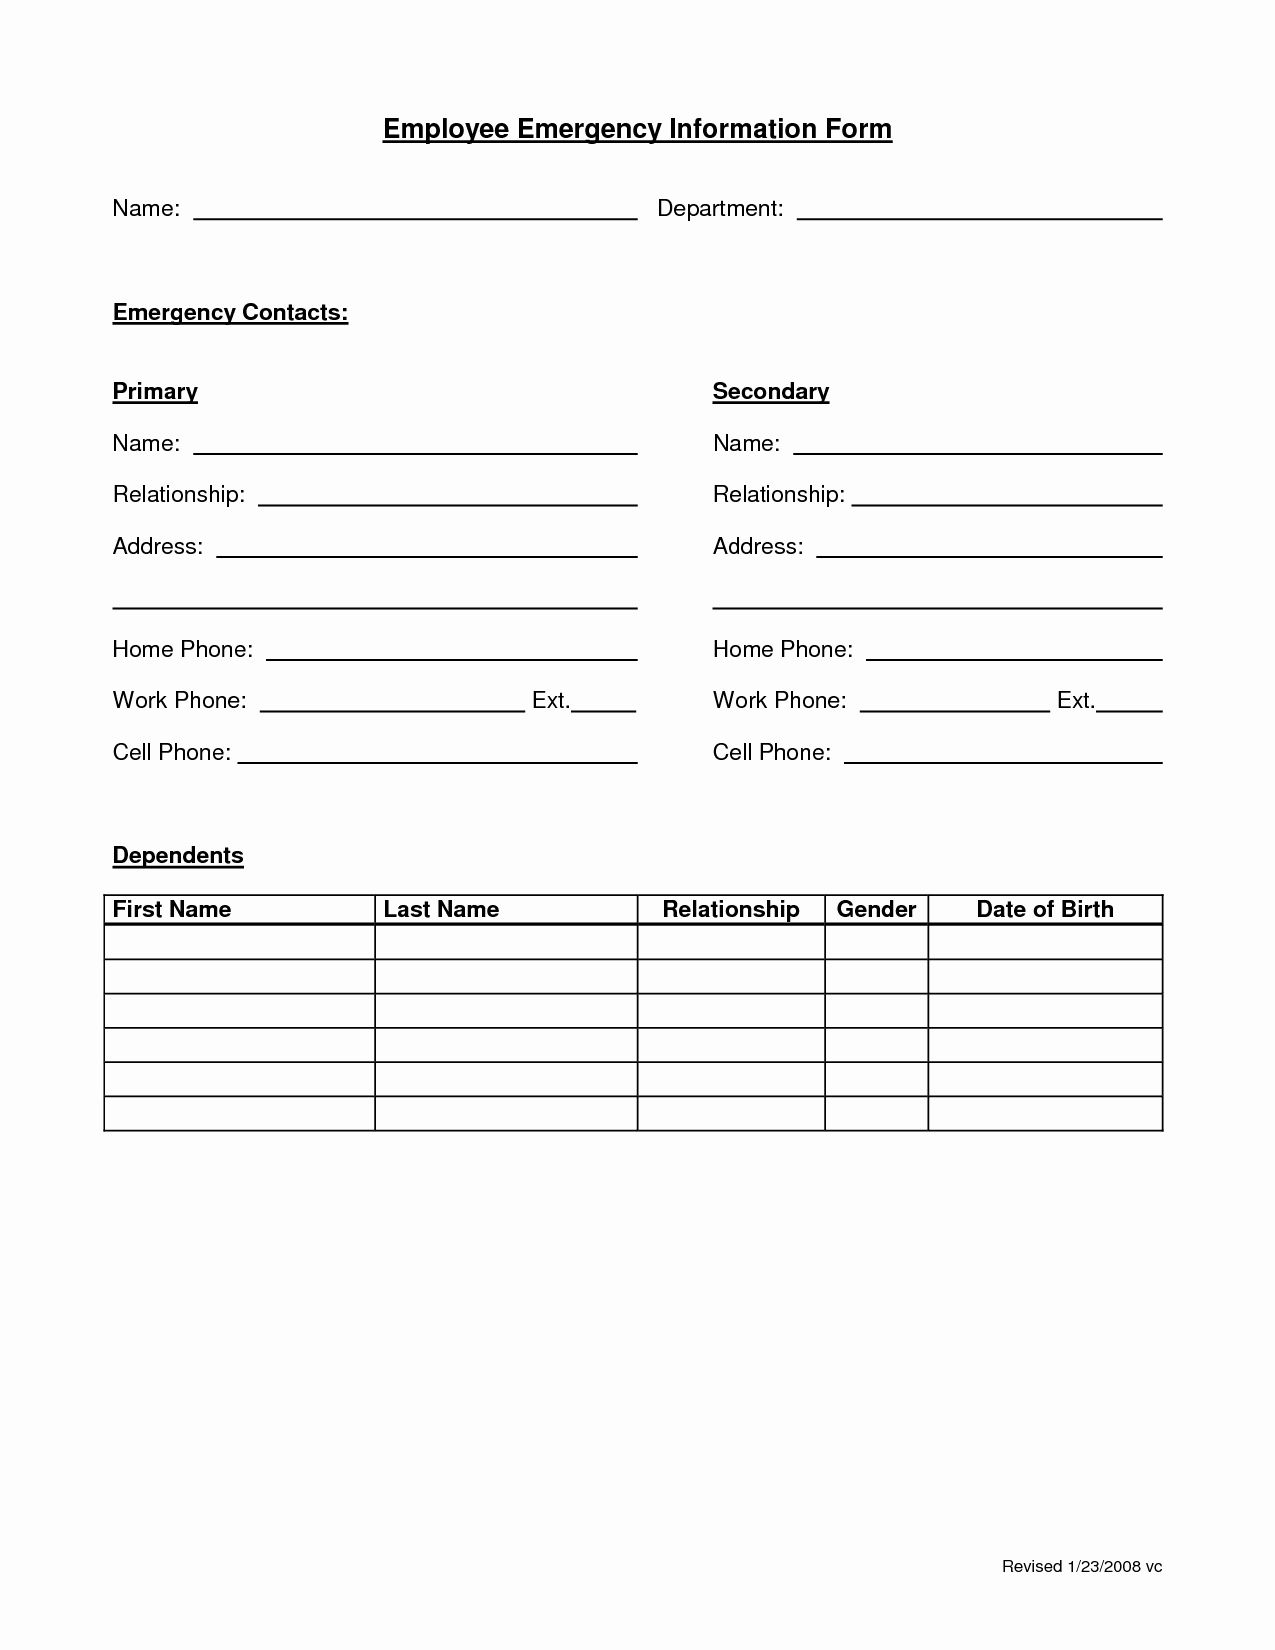 Contact Information Form Template Word Inspirational Contact Information Template Word Portablegasgrillwe Emergency Contact Form Emergency Contact Contact Form